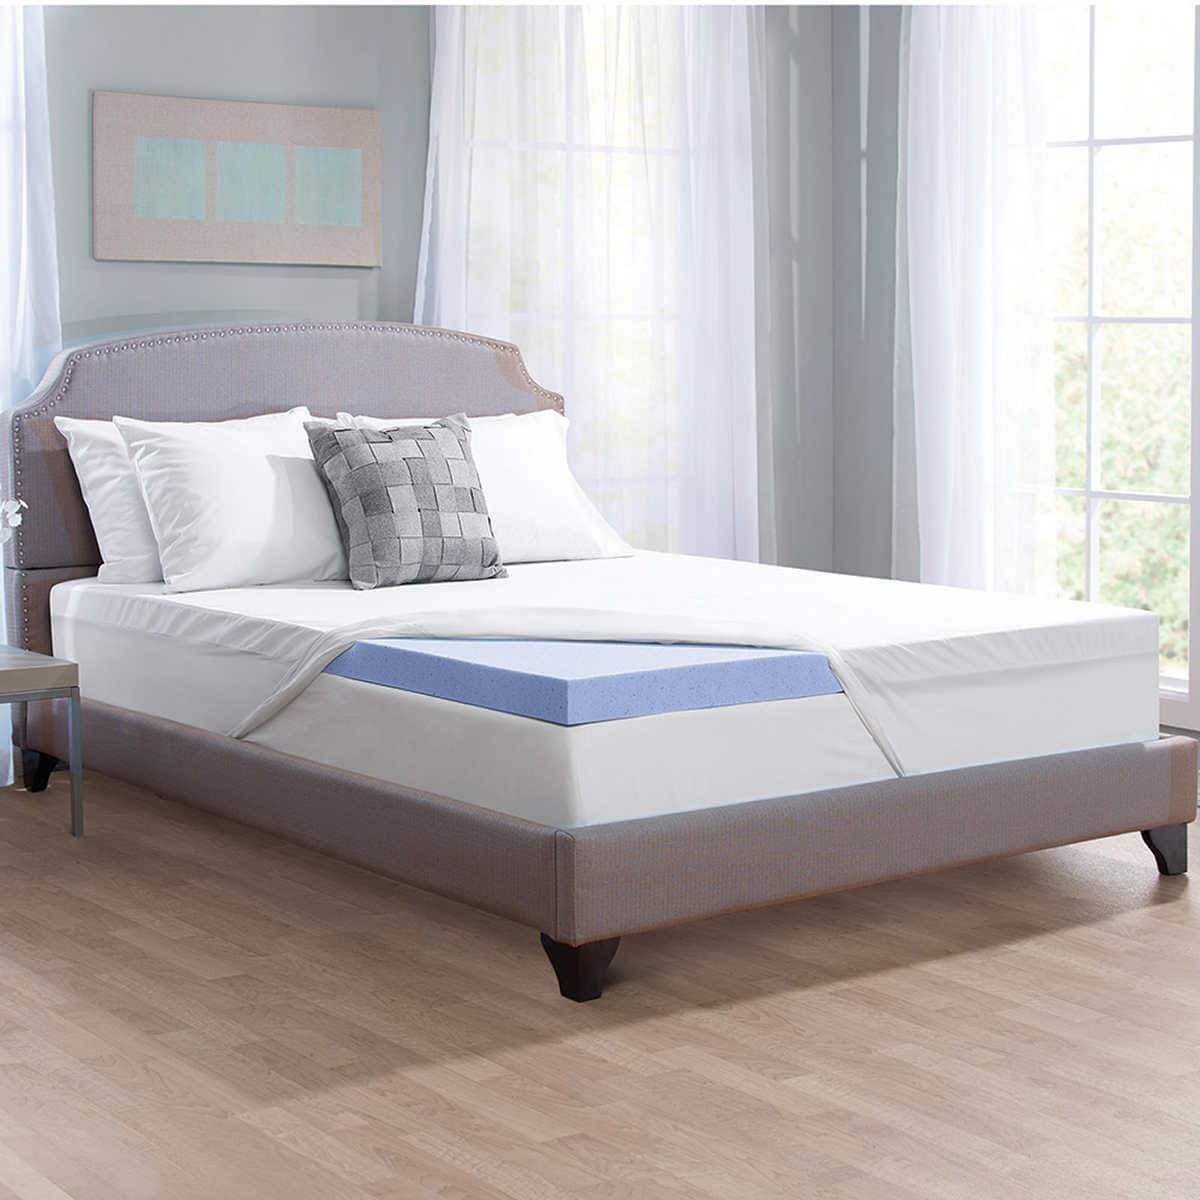 Novaform Serafina Collection 3 Gel Memory Foam Mattress Topper 59 99 Free Shipping